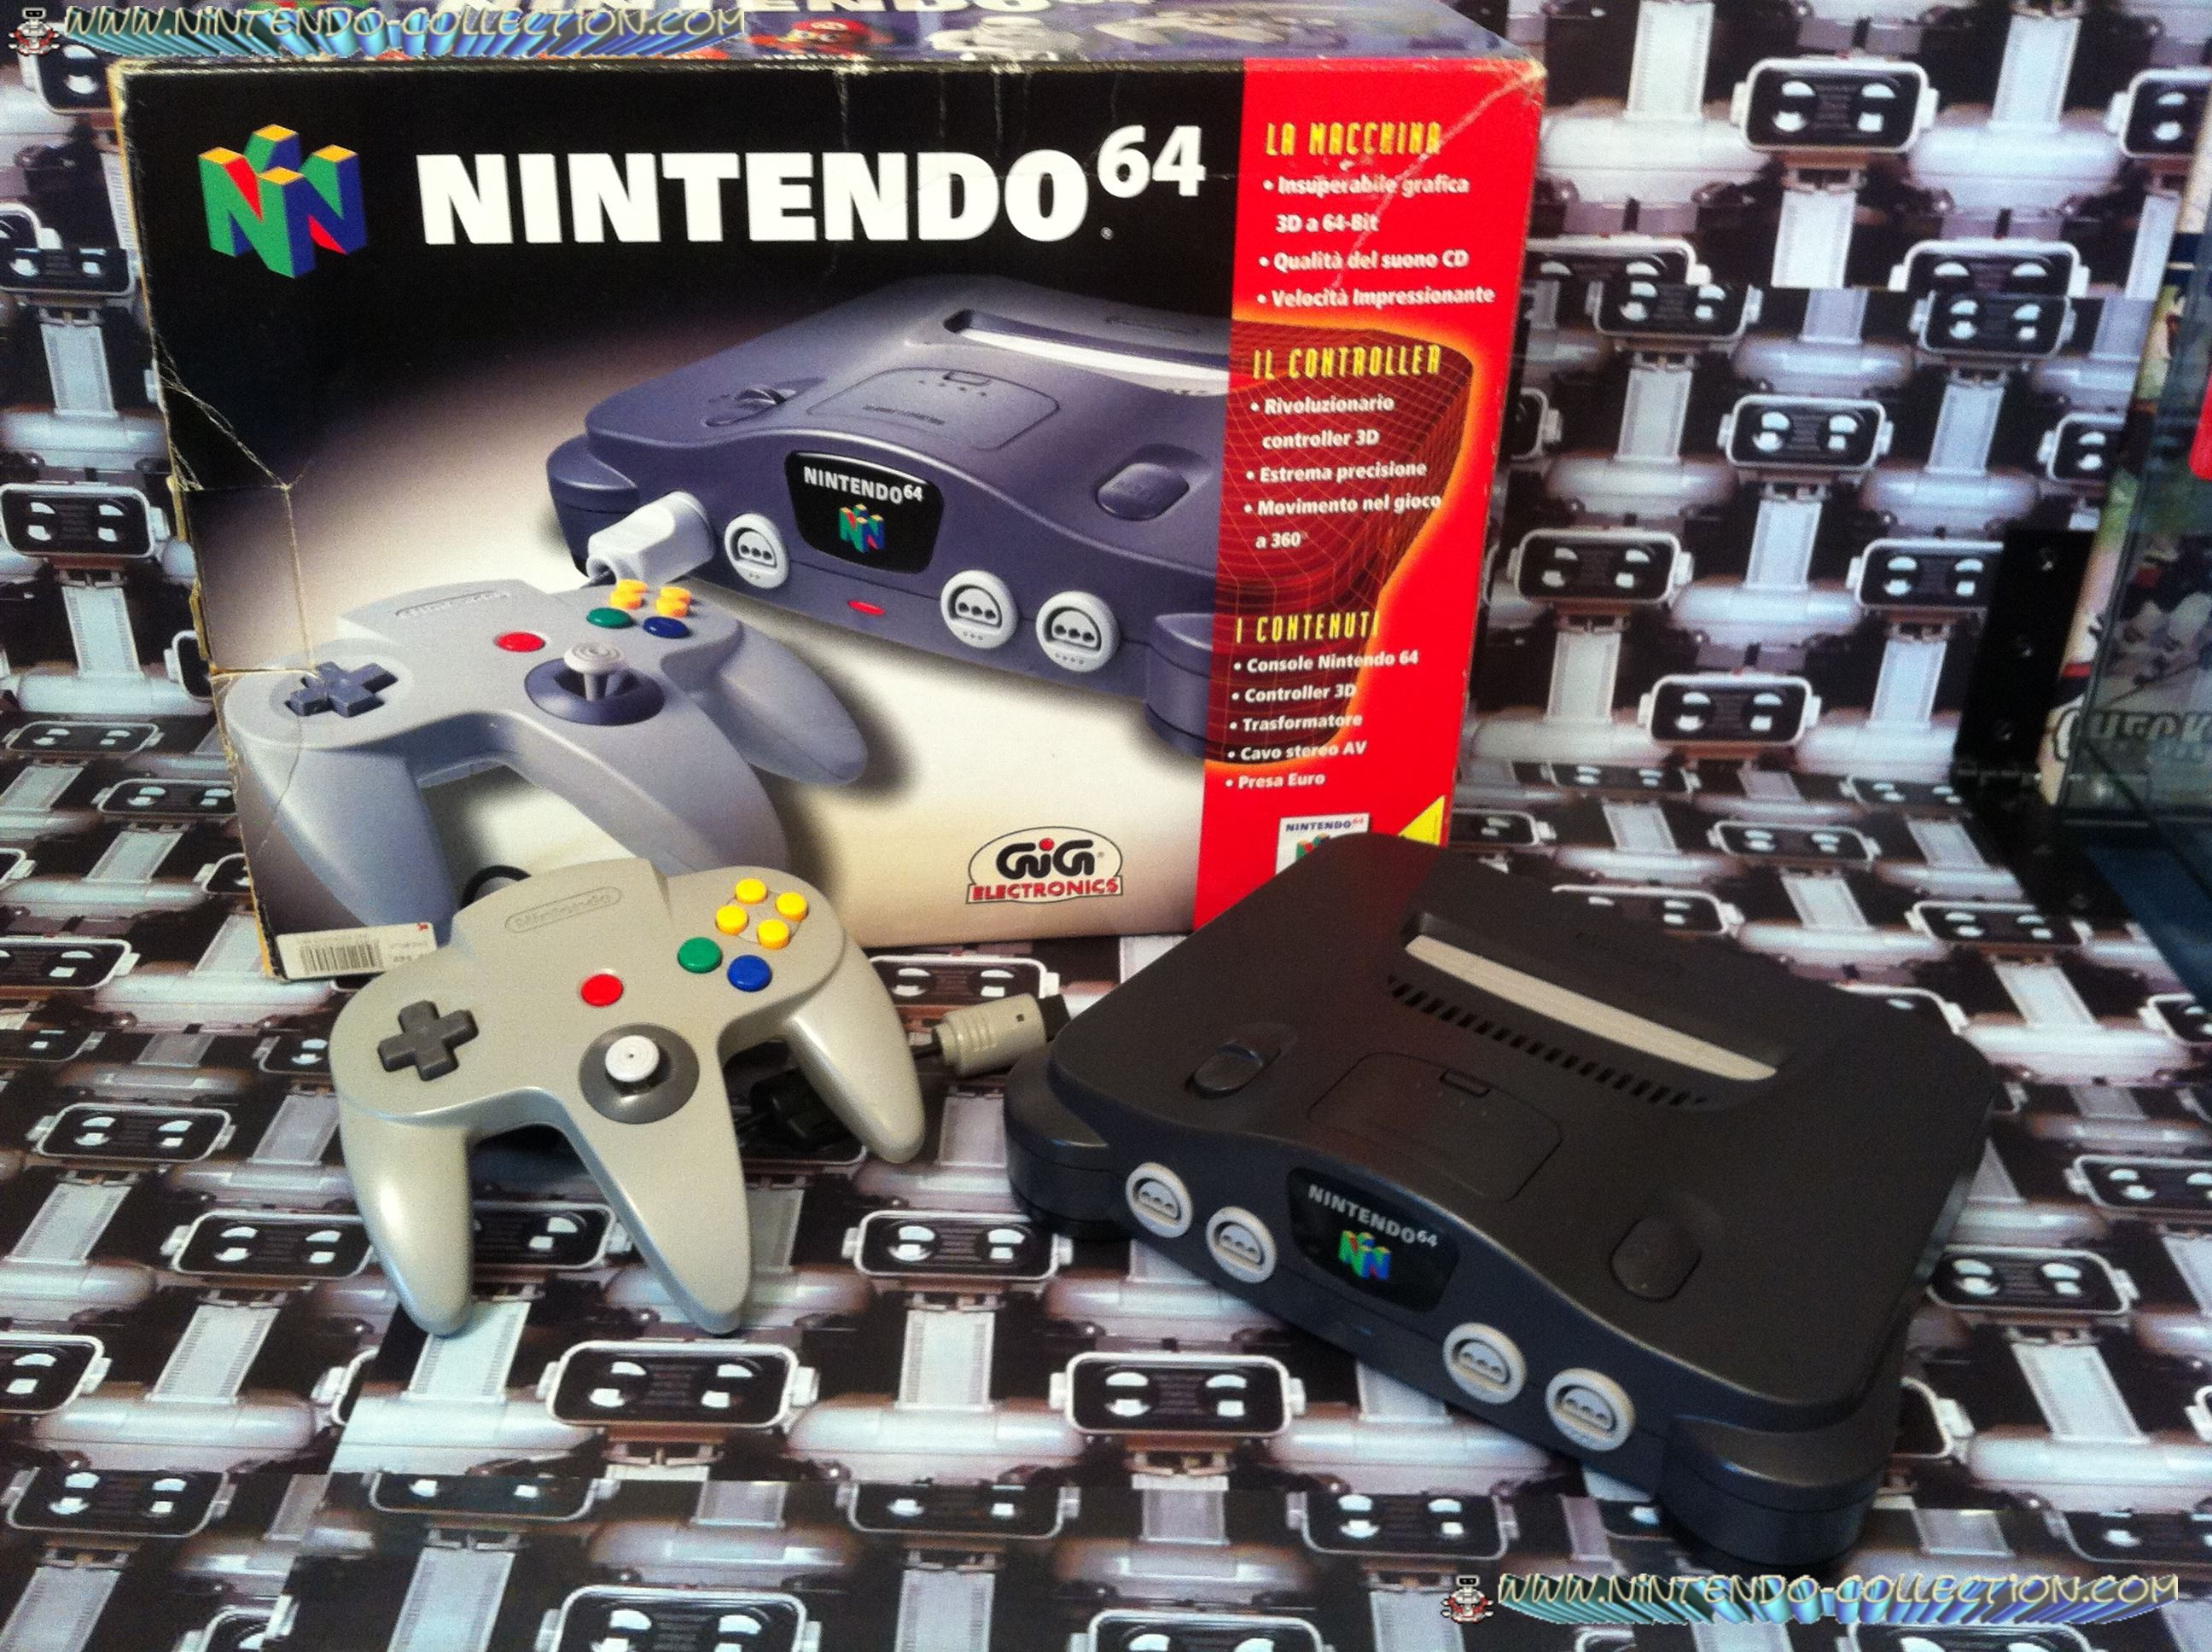 www.nintendo-collection.com - Nintendo 64 N64 GIG version